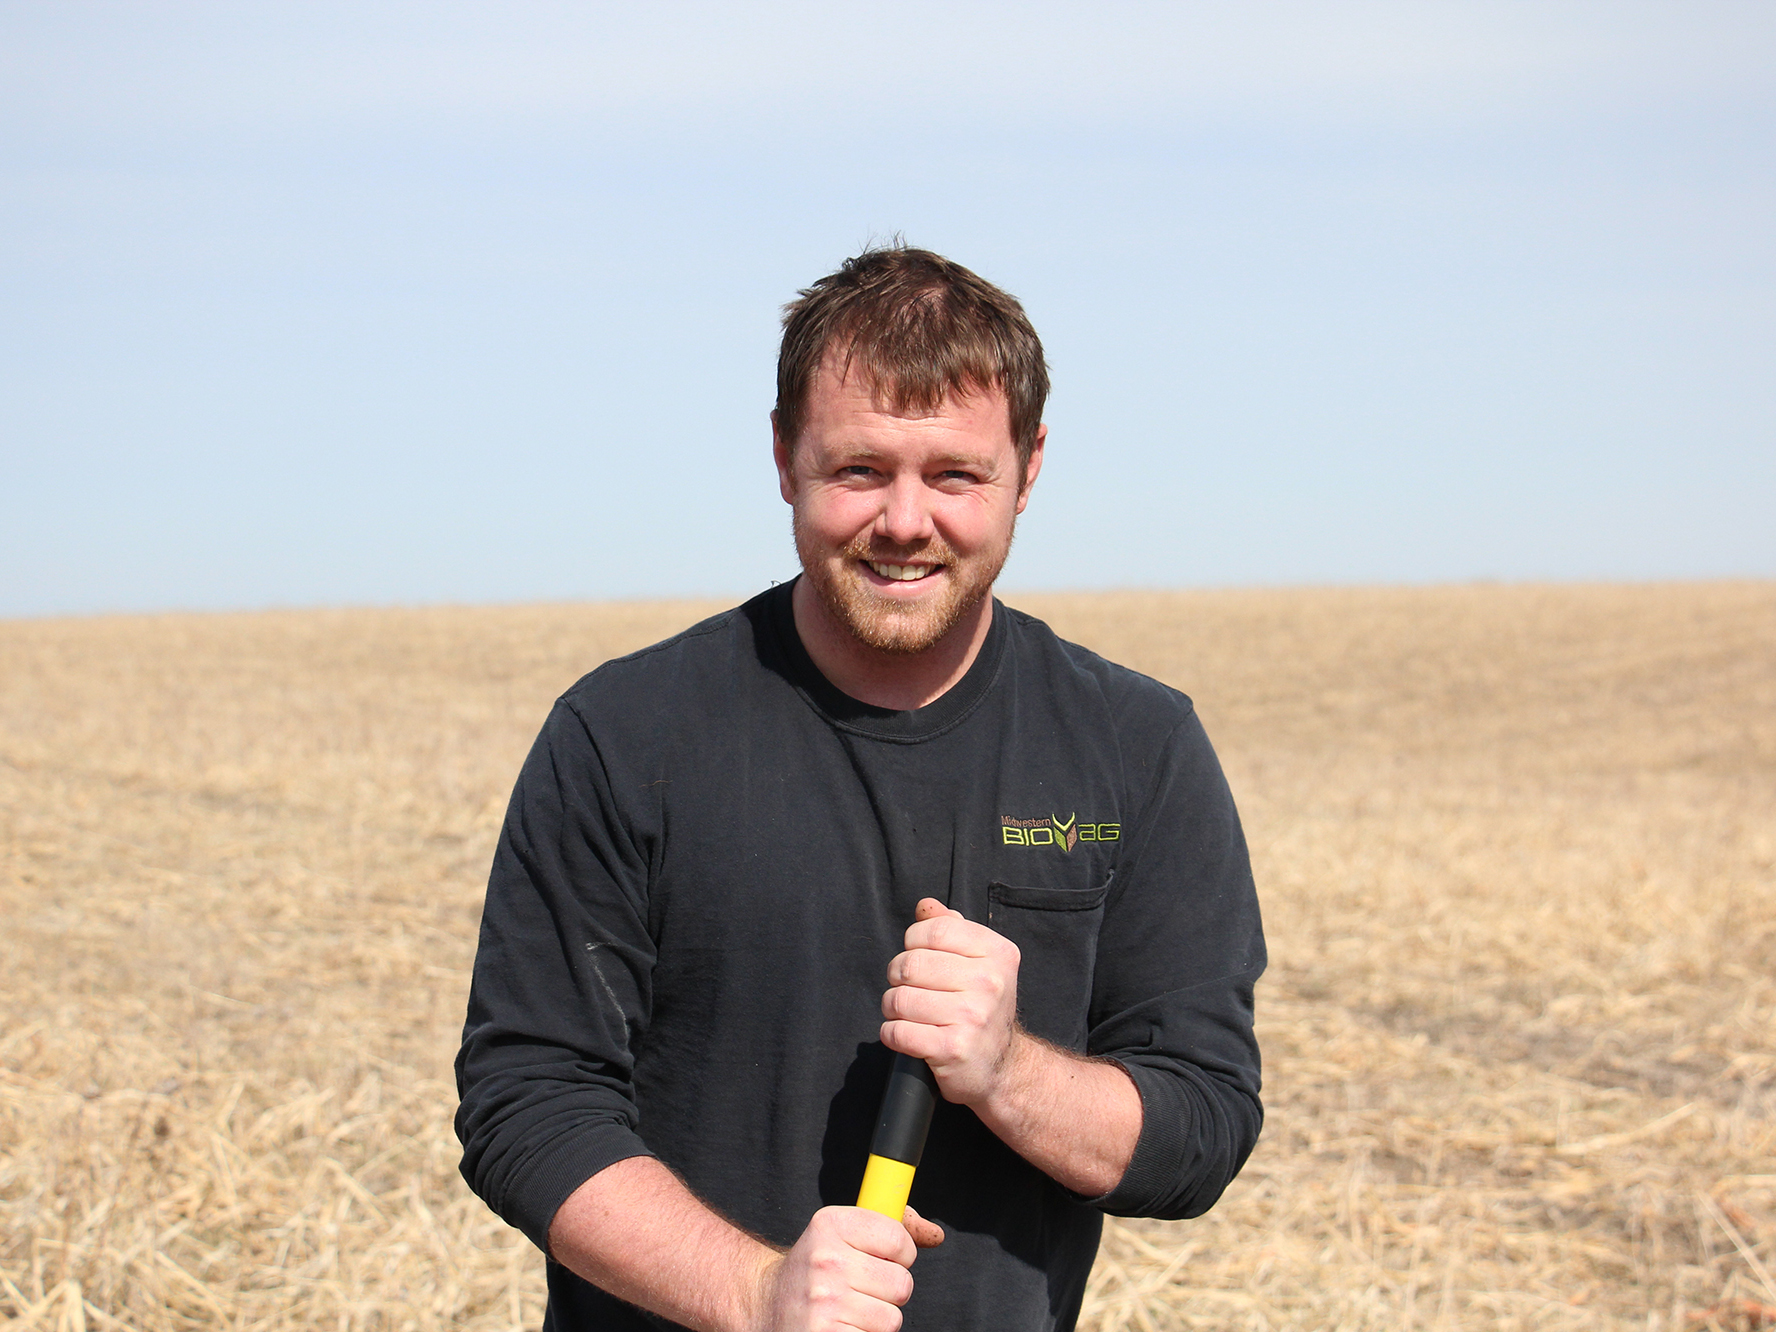 Bryce Irlbeck of Manning, Iowa, says his family's farm uses less fertilizer now that they are planting cover crops between harvests.